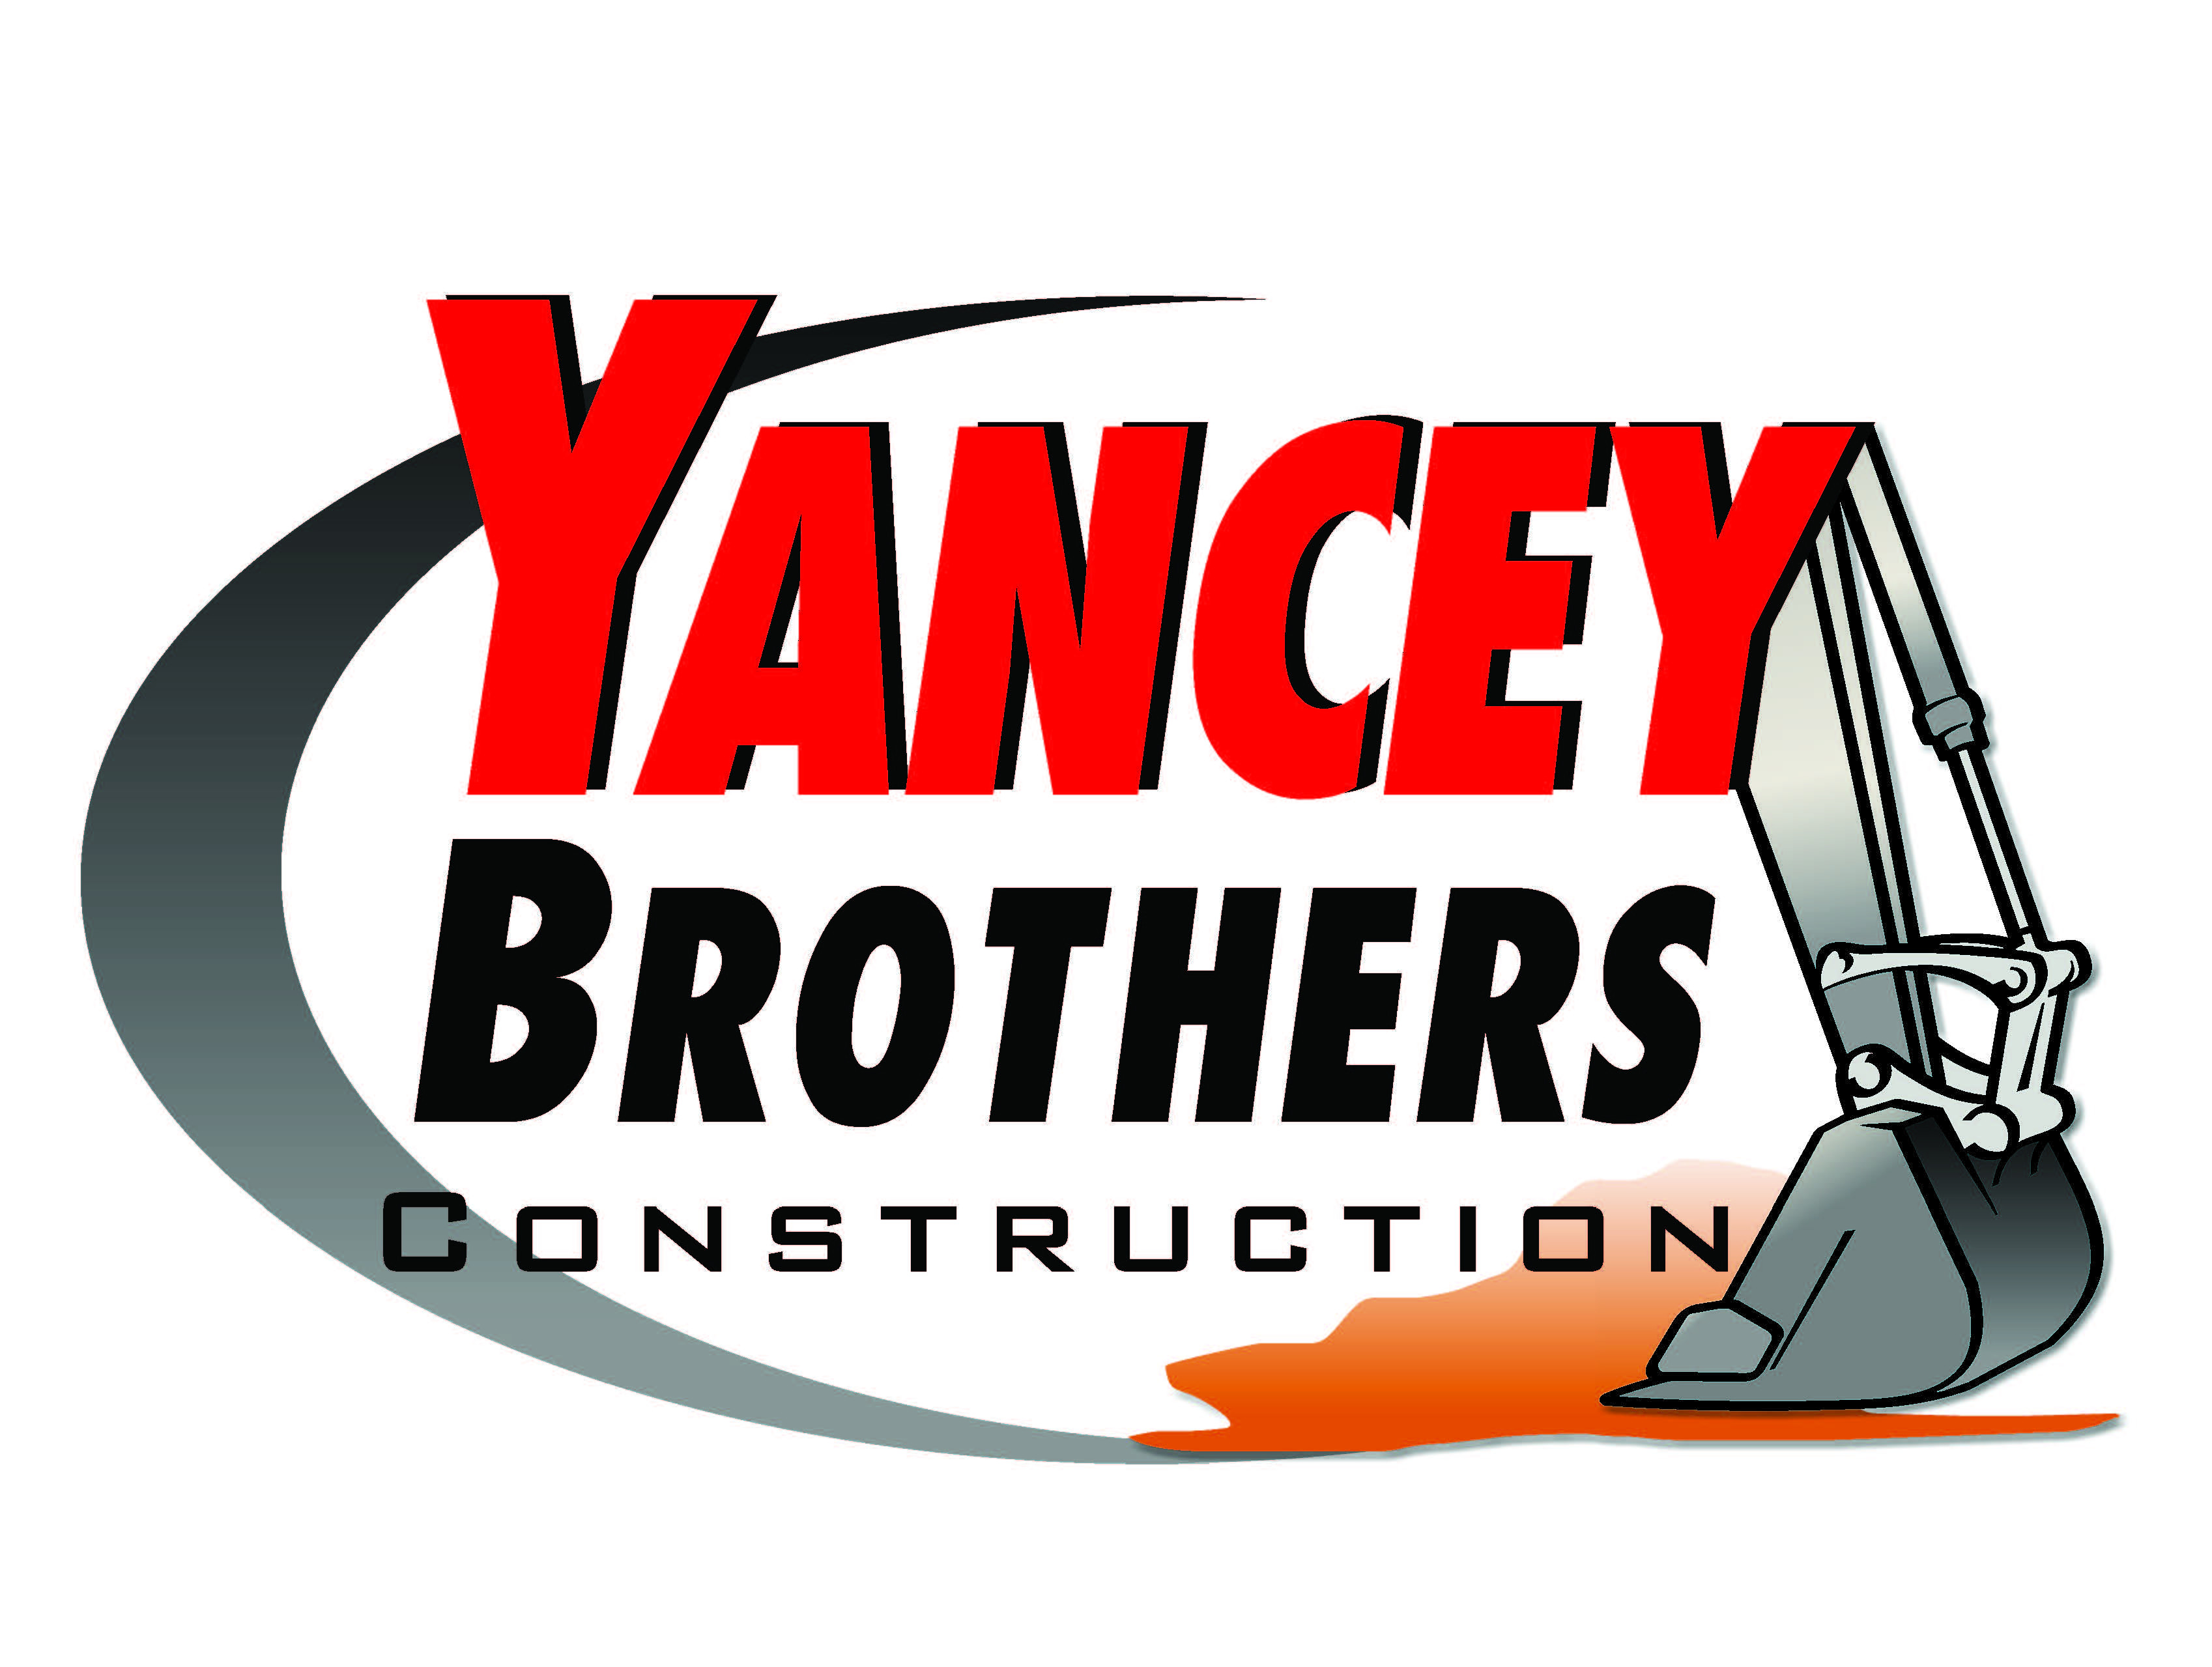 Yancey Brothers Construction